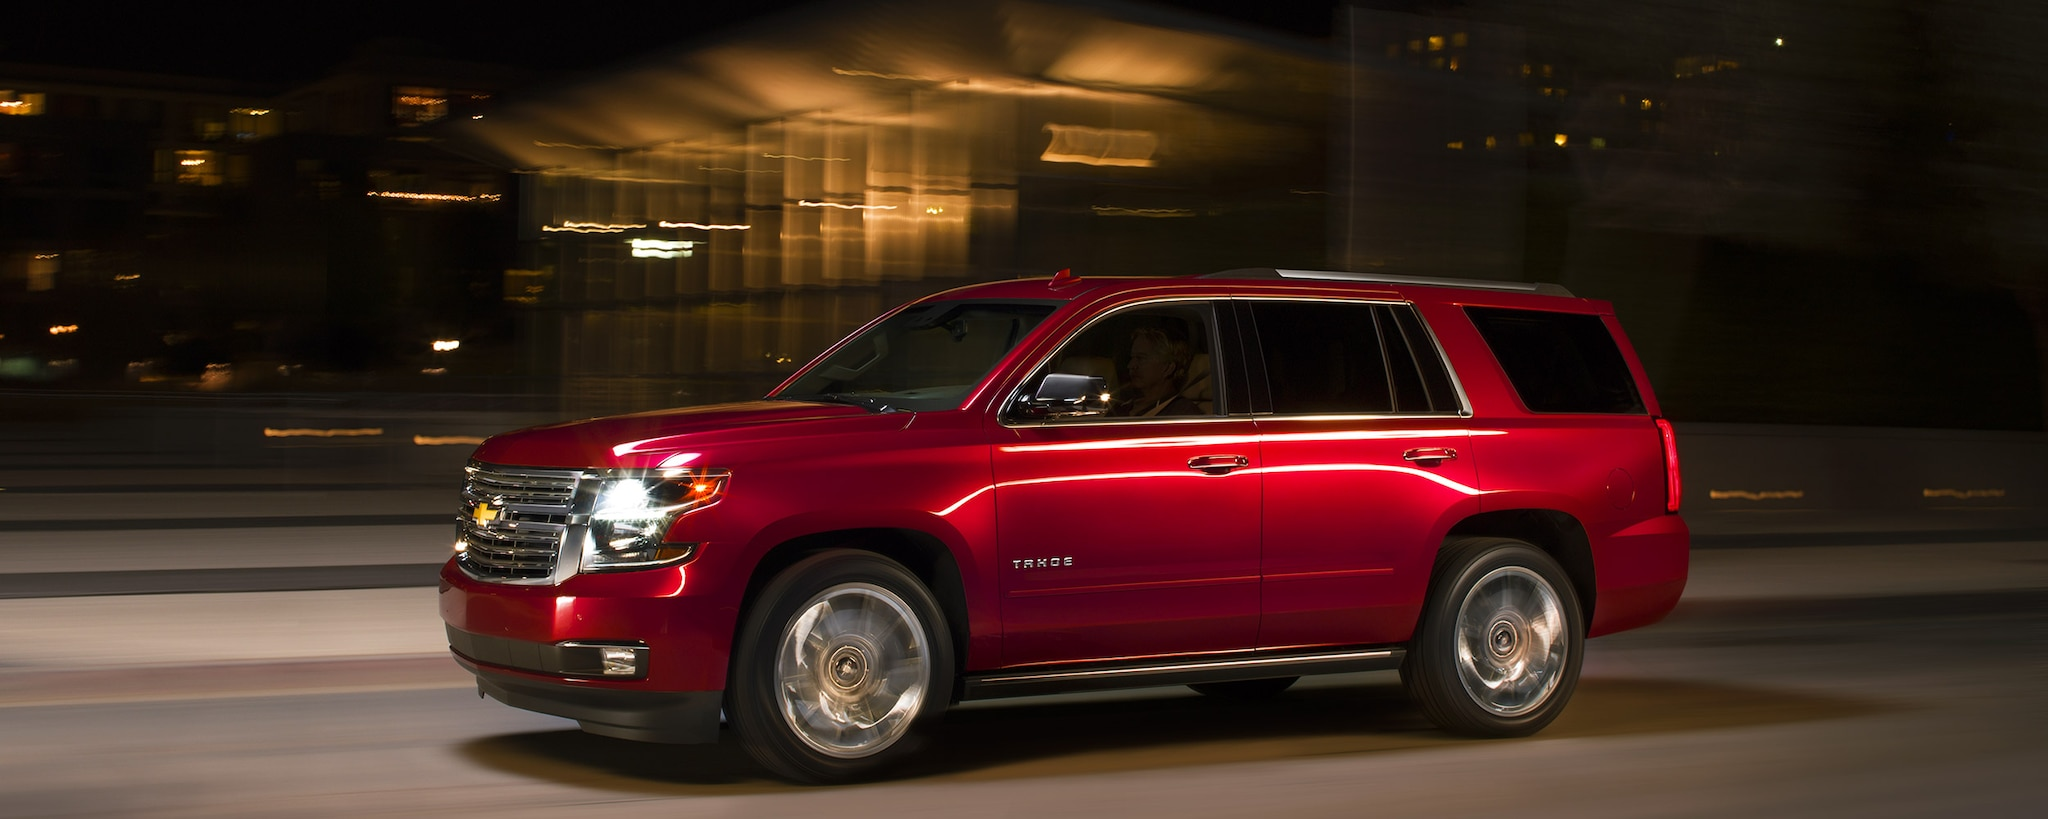 2018 Tahoe SUV Exterior Photo: lado